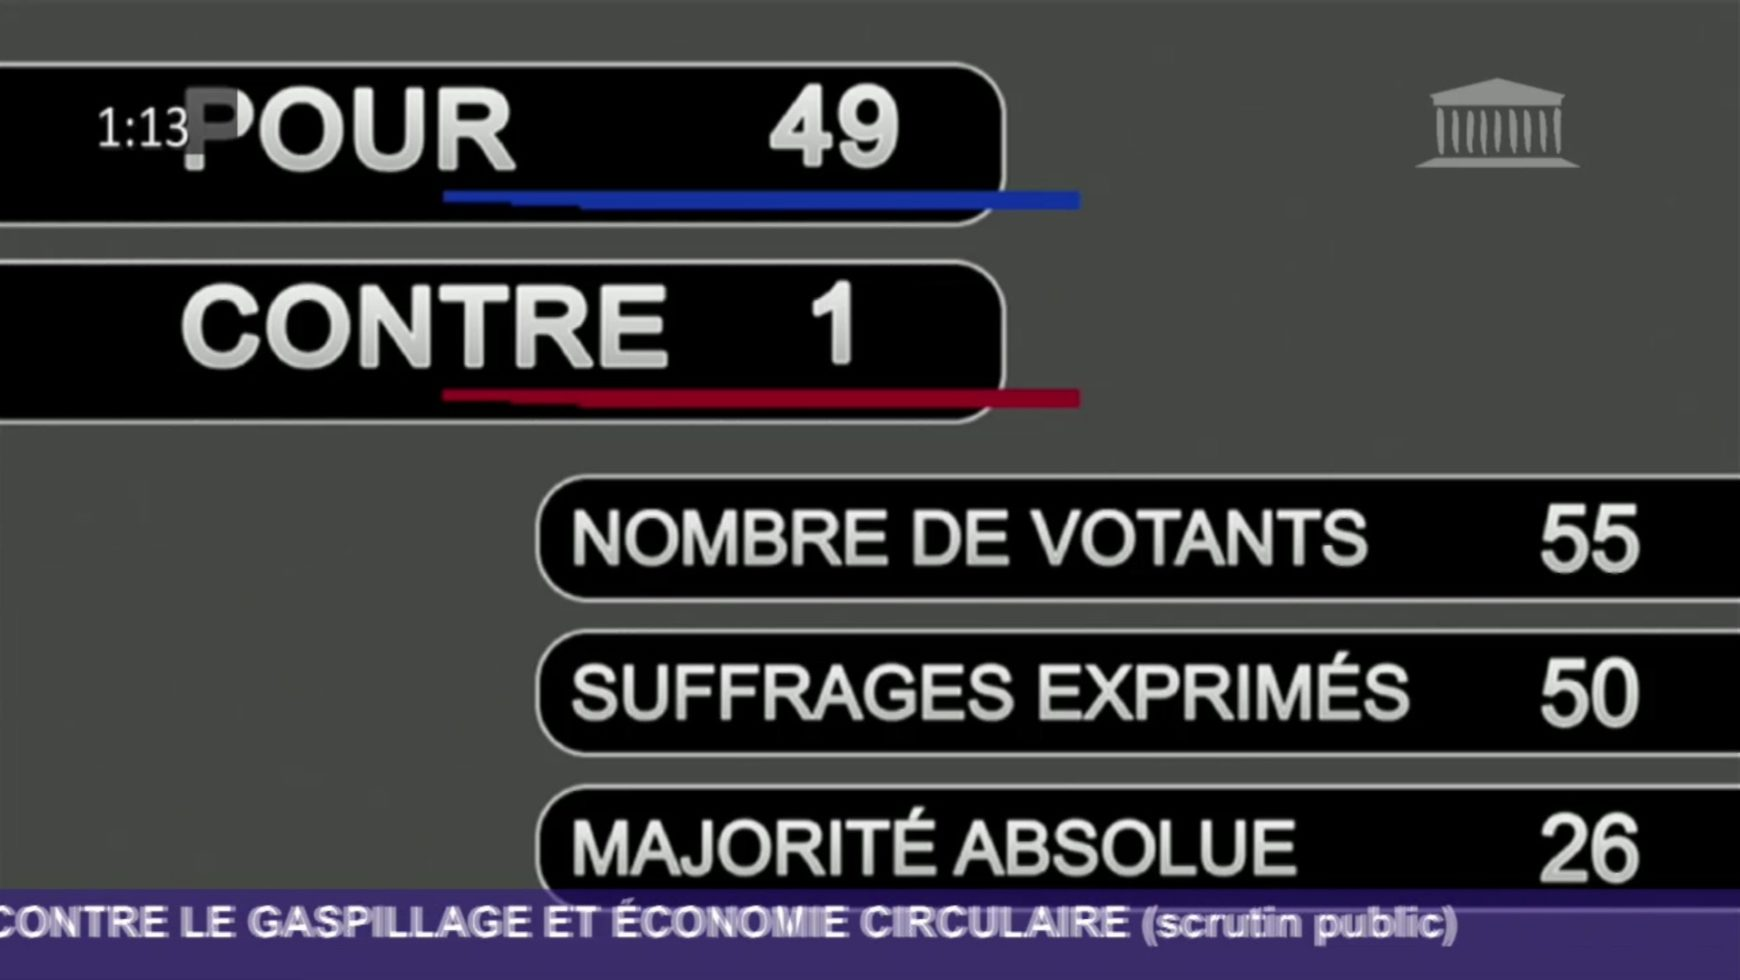 Adoption du projet de loi anti-gaspillage : explication de vote de Bruno Millienne